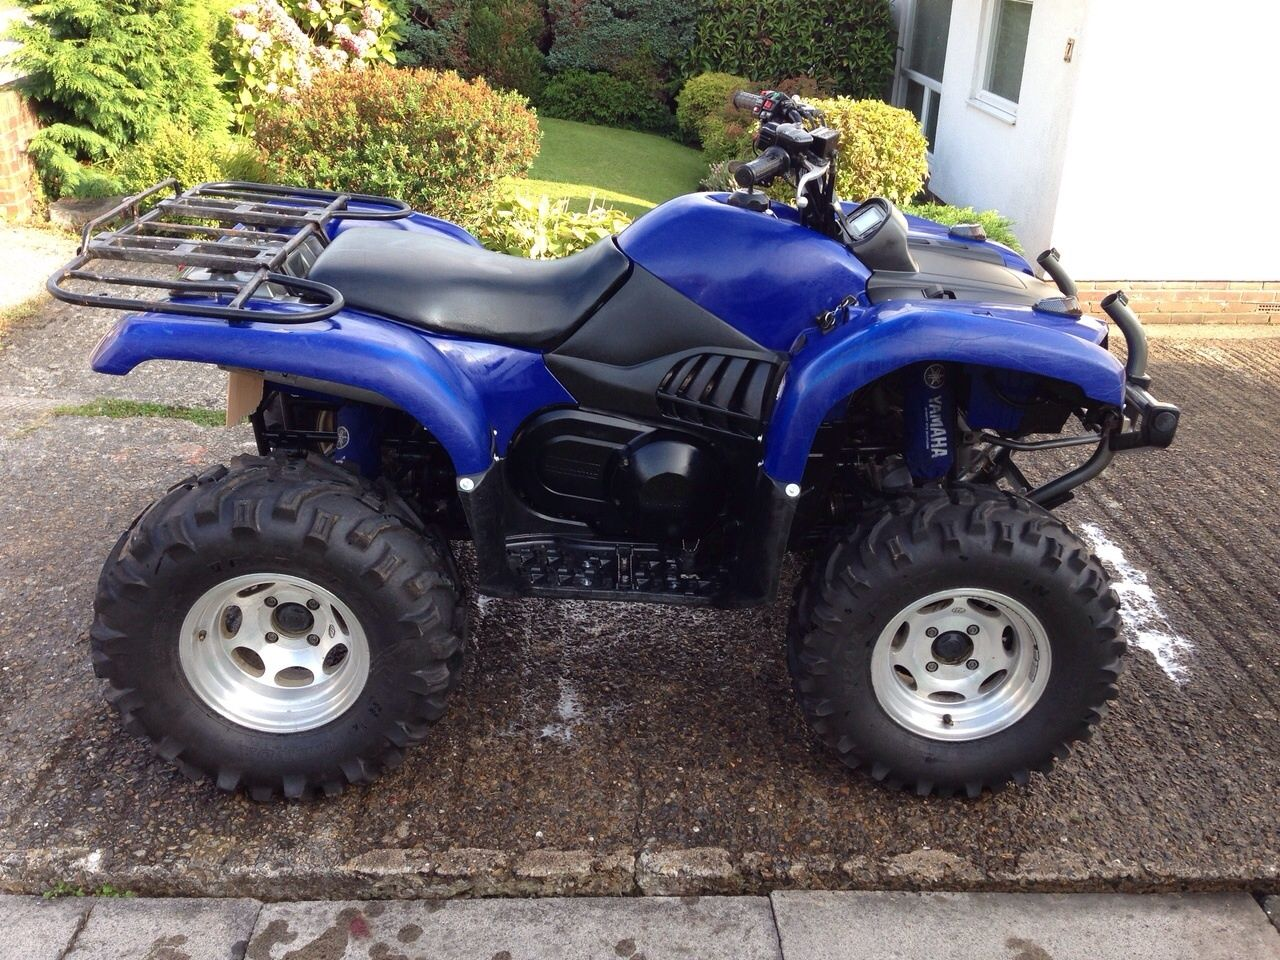 Yamaha grizzly 660 727cc road legal atv 2006 4x4 not for 2006 yamaha grizzly 660 value